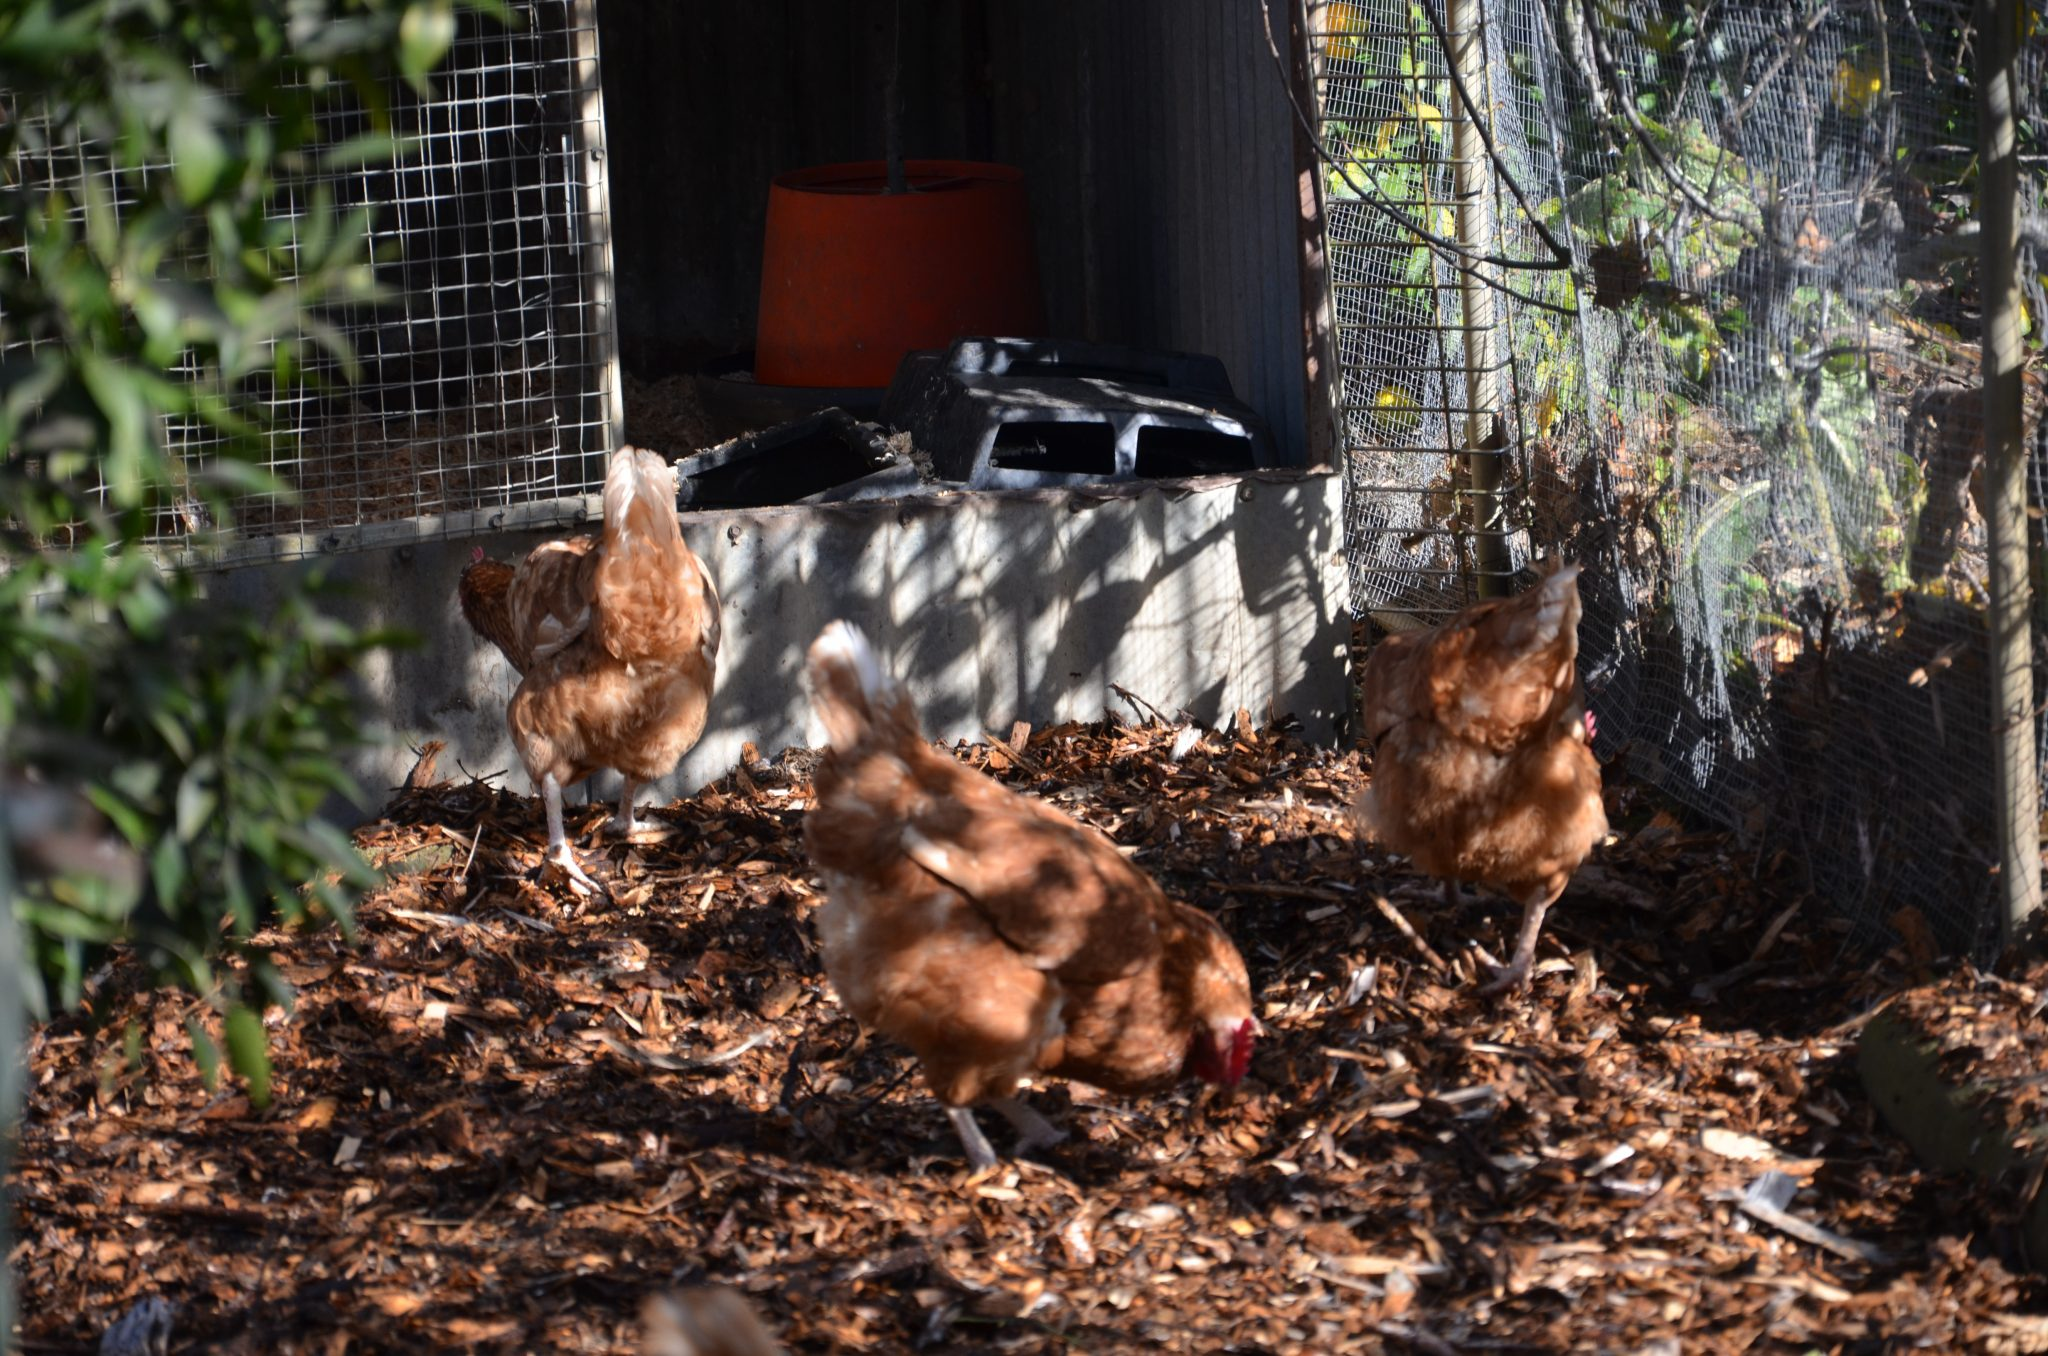 grow your own food my productive backyard diy gardening garden southern highlands wildes meadow burrawang robertson garden consultant grow your own good food chooks chickens chicken handling manual